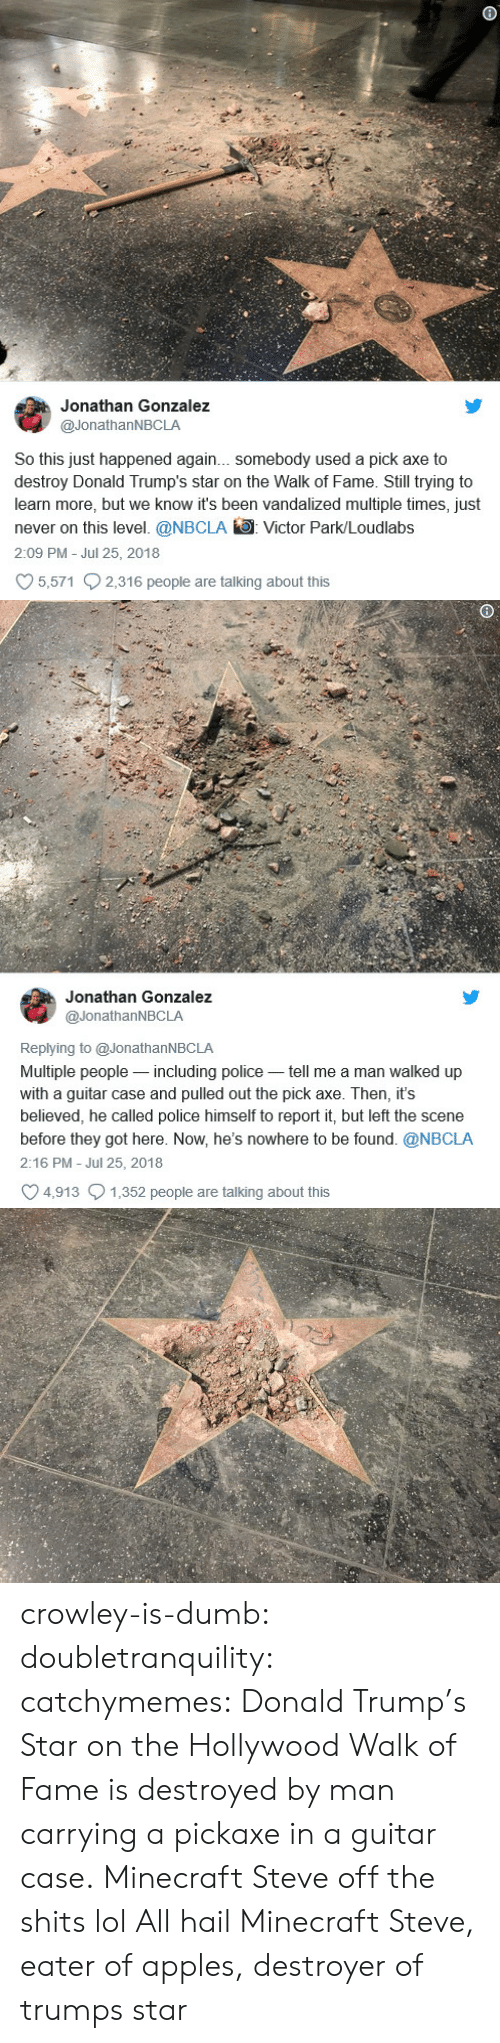 destroyer: Jonathan Gonzalez  @JonathanNBCLA  So this just happened again... somebody used a pick axe to  destroy Donald Trump's star on the Walk of Fame. Still trying to  learn more, but we know it's been vandalized multiple times, just  never on this level. @NBCLA Victor Park/Loudlabs  2:09 PM Jul 25, 2018  5,571 2,316 people are talking about this   Jonathan Gonzalez  @JonathanNBCLA  Replying to @JonathanNBCLA  Multiple people-including police tell me a man walked up  with a guitar case and pulled out the pick axe. Then, it's  believed, he called police himself to report it, but left the scene  before they got here. Now, he's nowhere to be found. @NBCLA  2:16 PM - Jul 25, 2018  4,913 1,352 people are talking about this crowley-is-dumb:  doubletranquility: catchymemes:  Donald Trump's Star on the Hollywood Walk of Fame is destroyed by man carrying a pickaxe in a guitar case.  Minecraft Steve off the shits lol   All hail Minecraft Steve, eater of apples, destroyer of trumps star